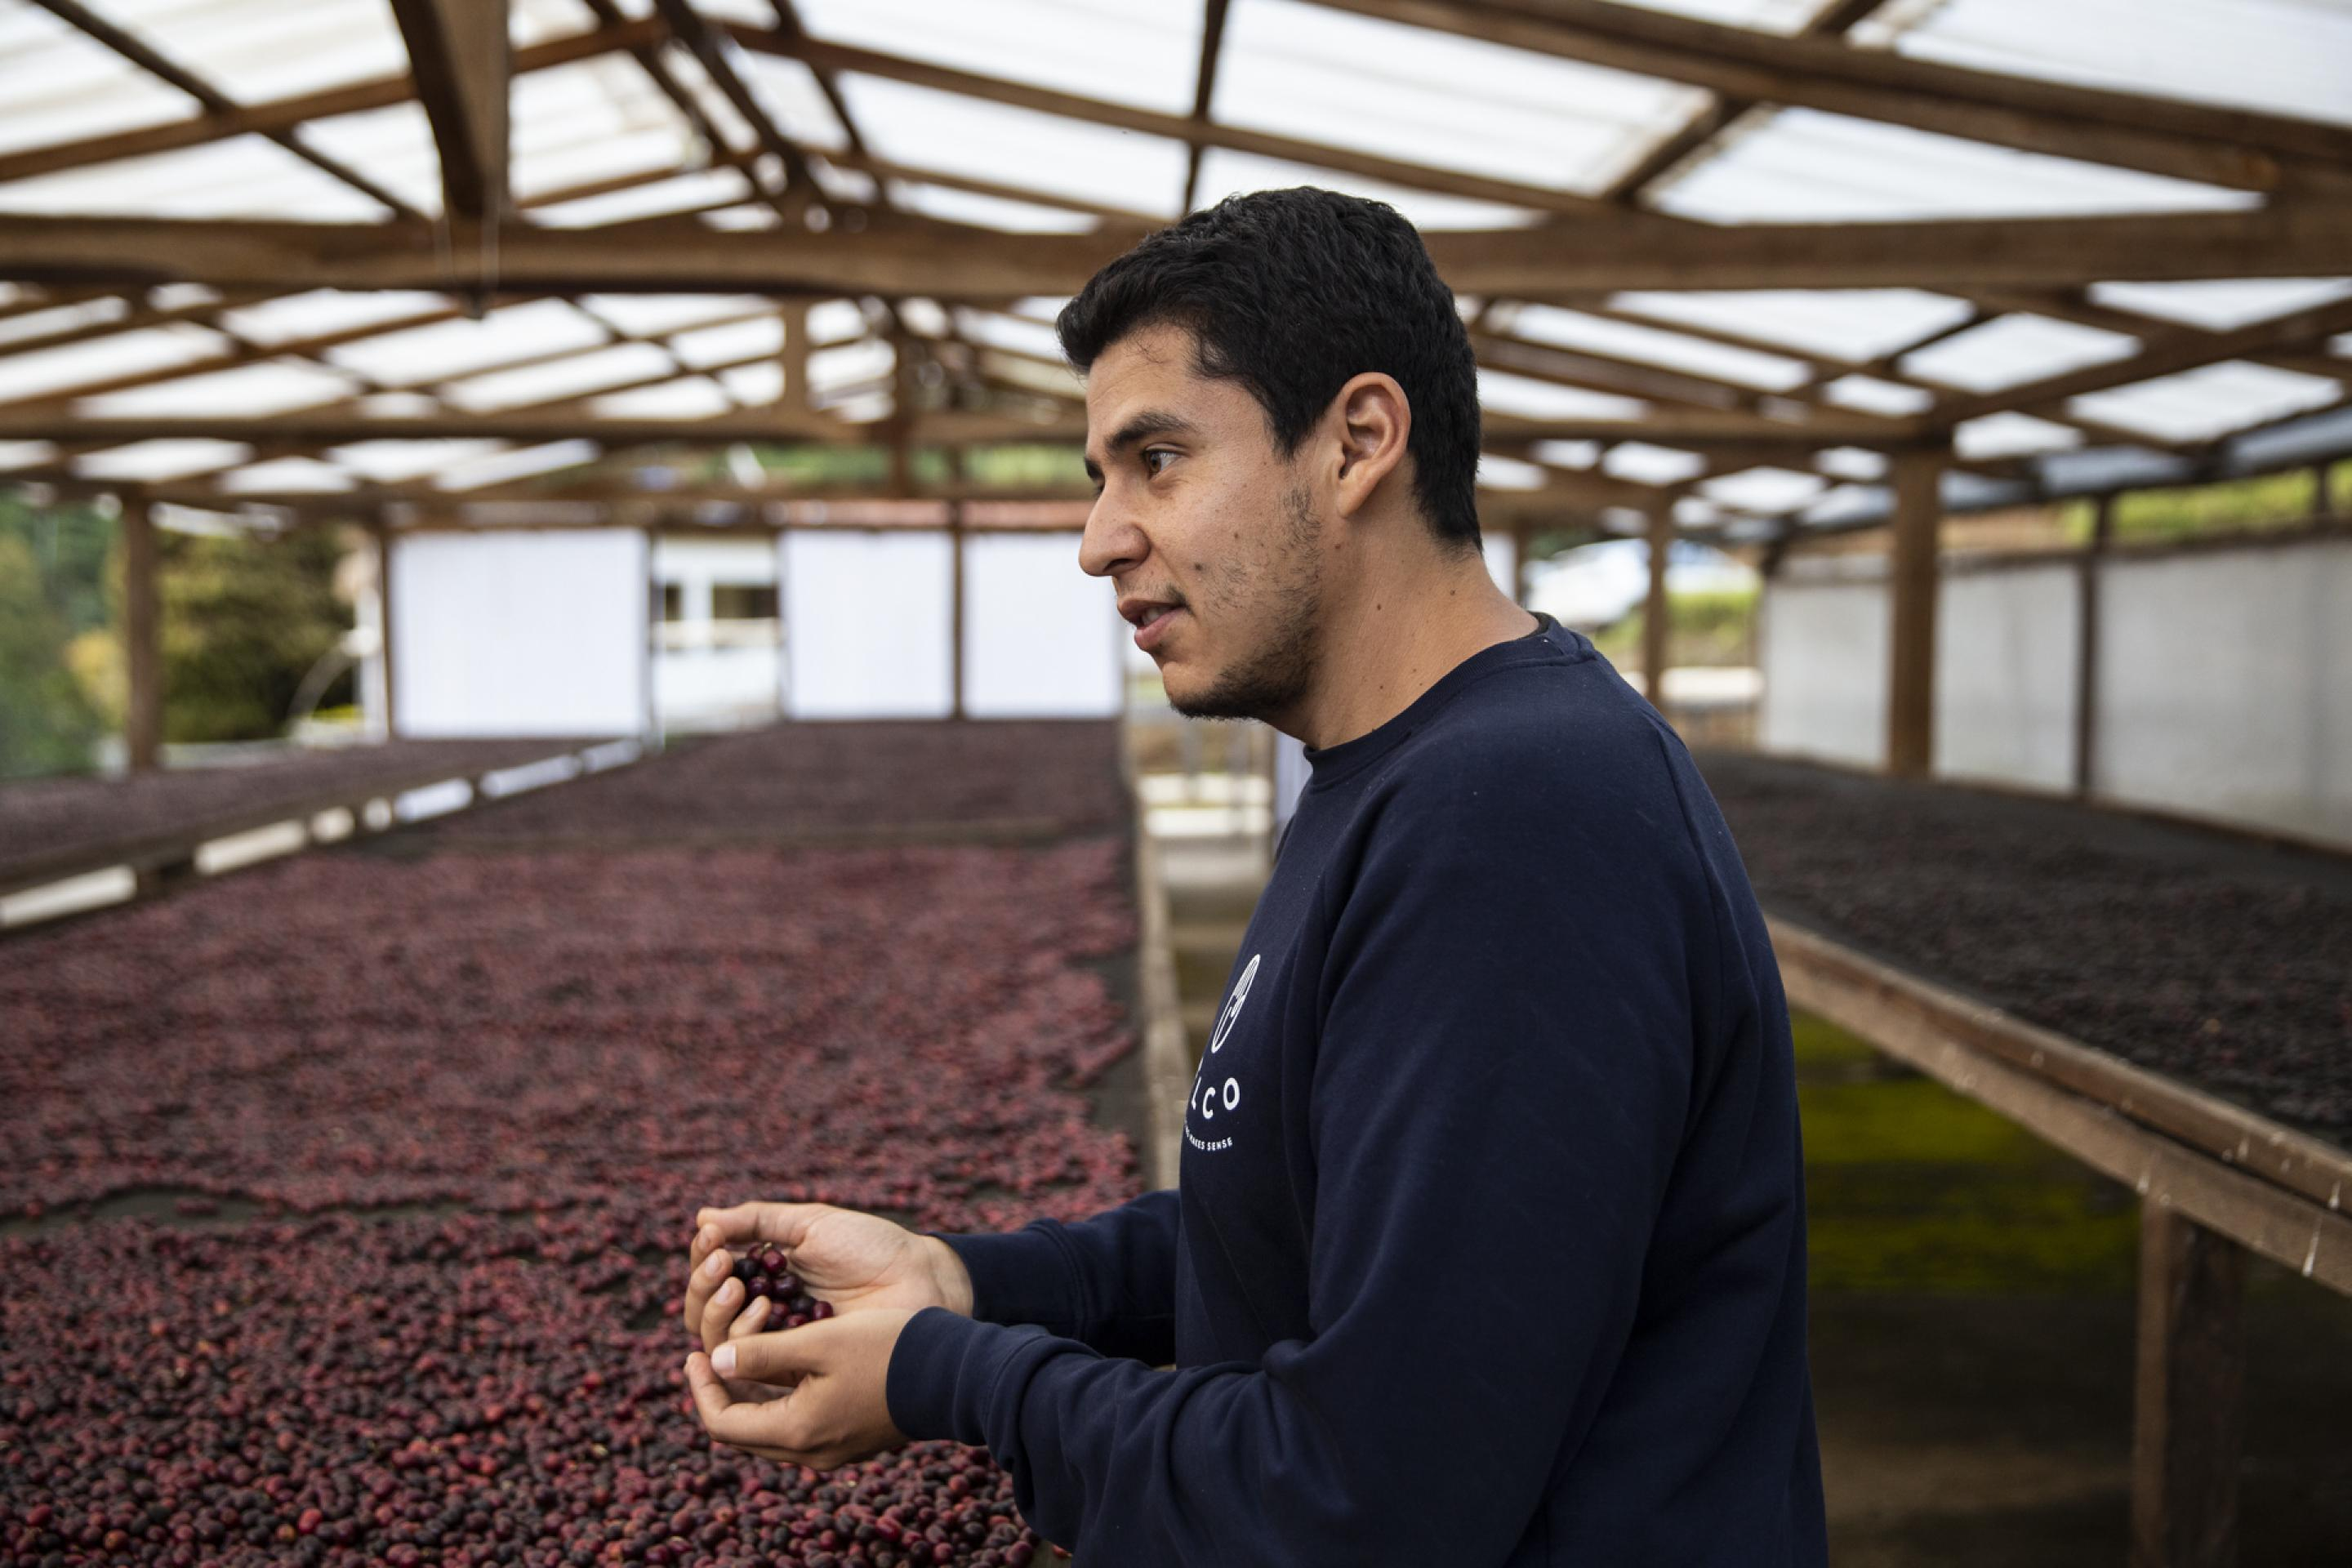 Ángel Barrera is an agroindustrial engineer, MSc in Food Technology, fourth generation of a coffee producing family in El Salvador, and current Head of Sourcing at BELCO, an independent French importer of sustainable coffees. Ángel is passionate about reading & writing, professional on the first & amateur on the second.